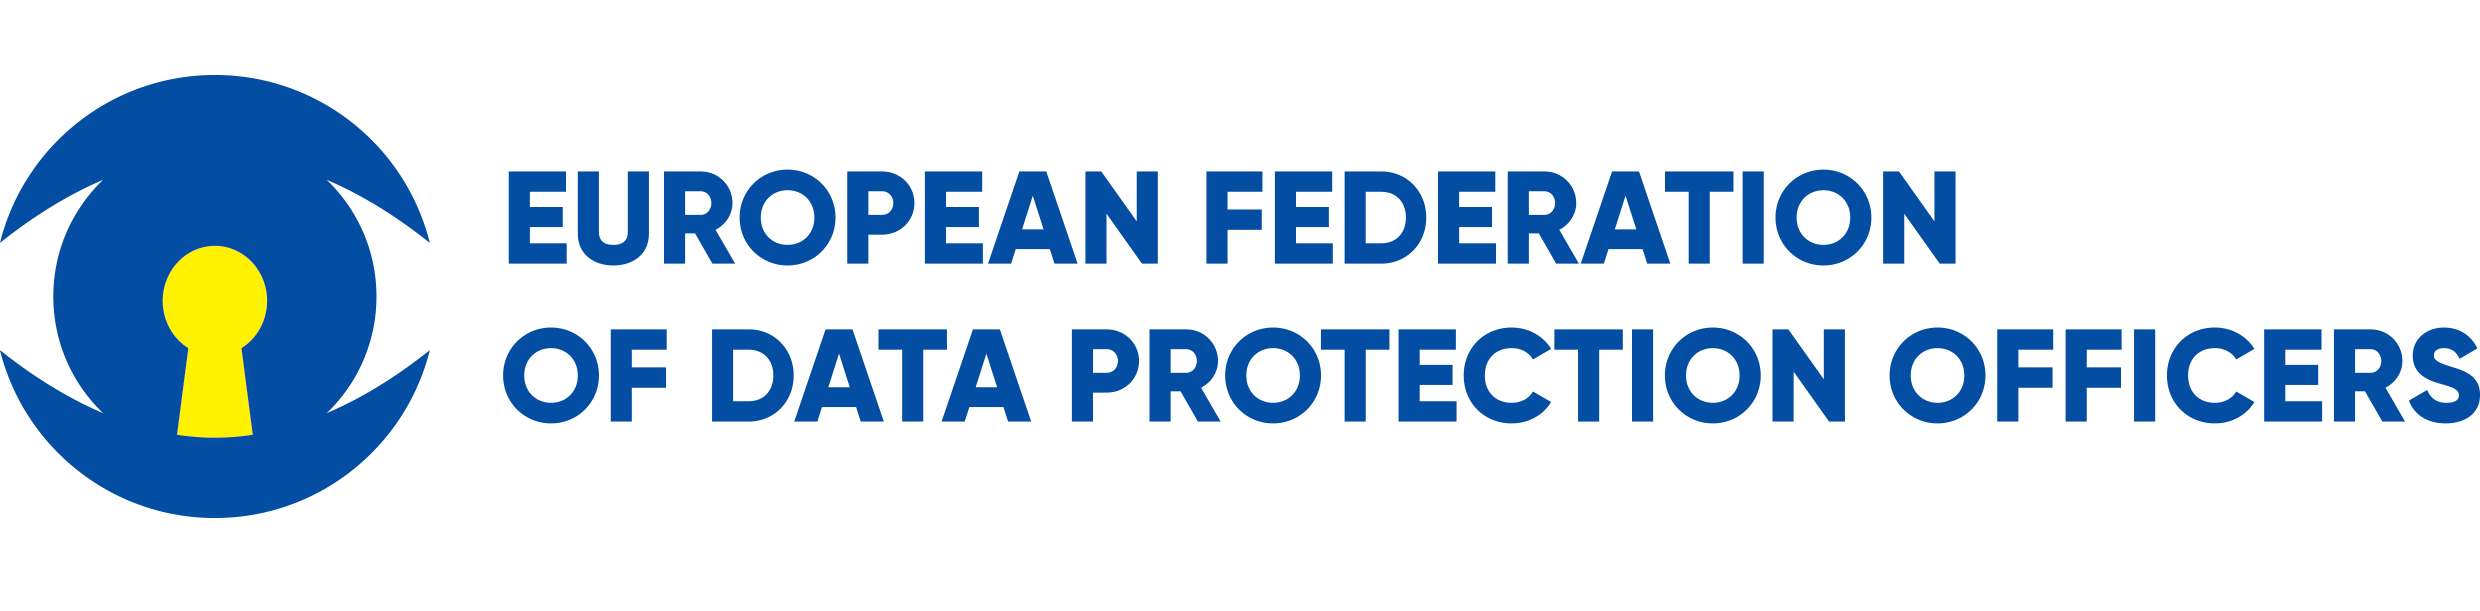 European Federation of Data Protection Officers